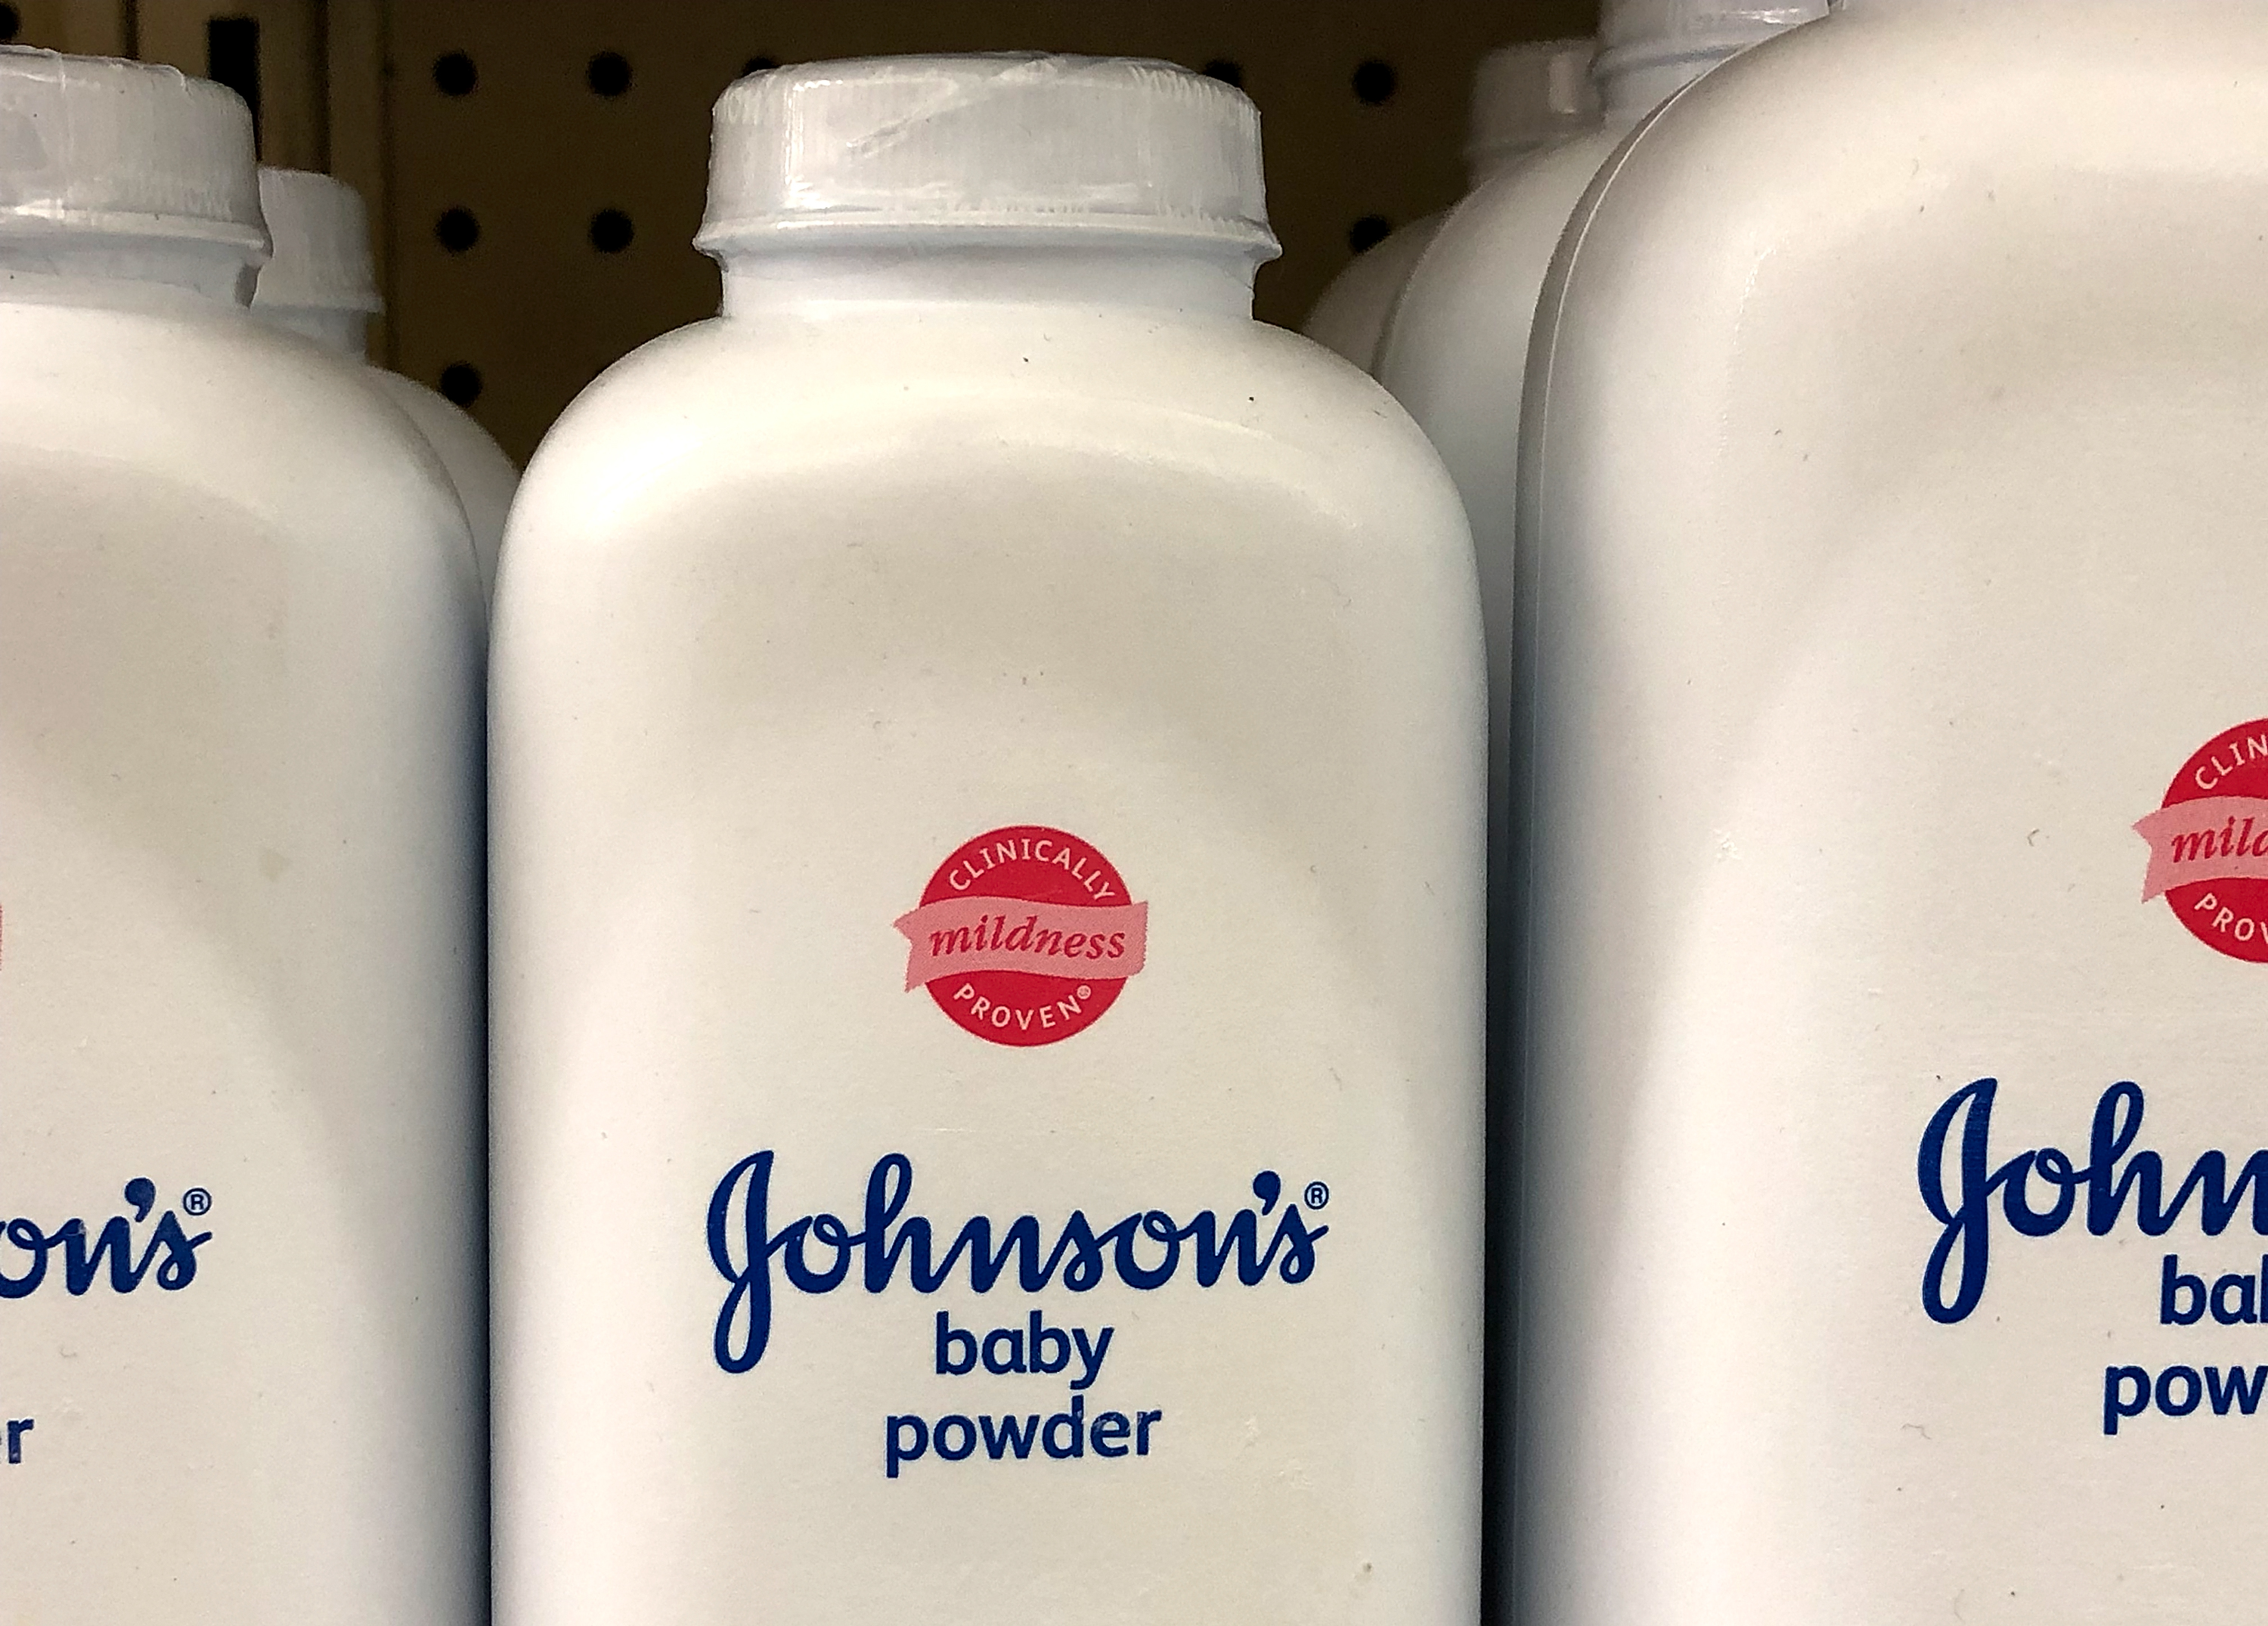 Johnson & Johnson reportedly hid presence of asbestos in